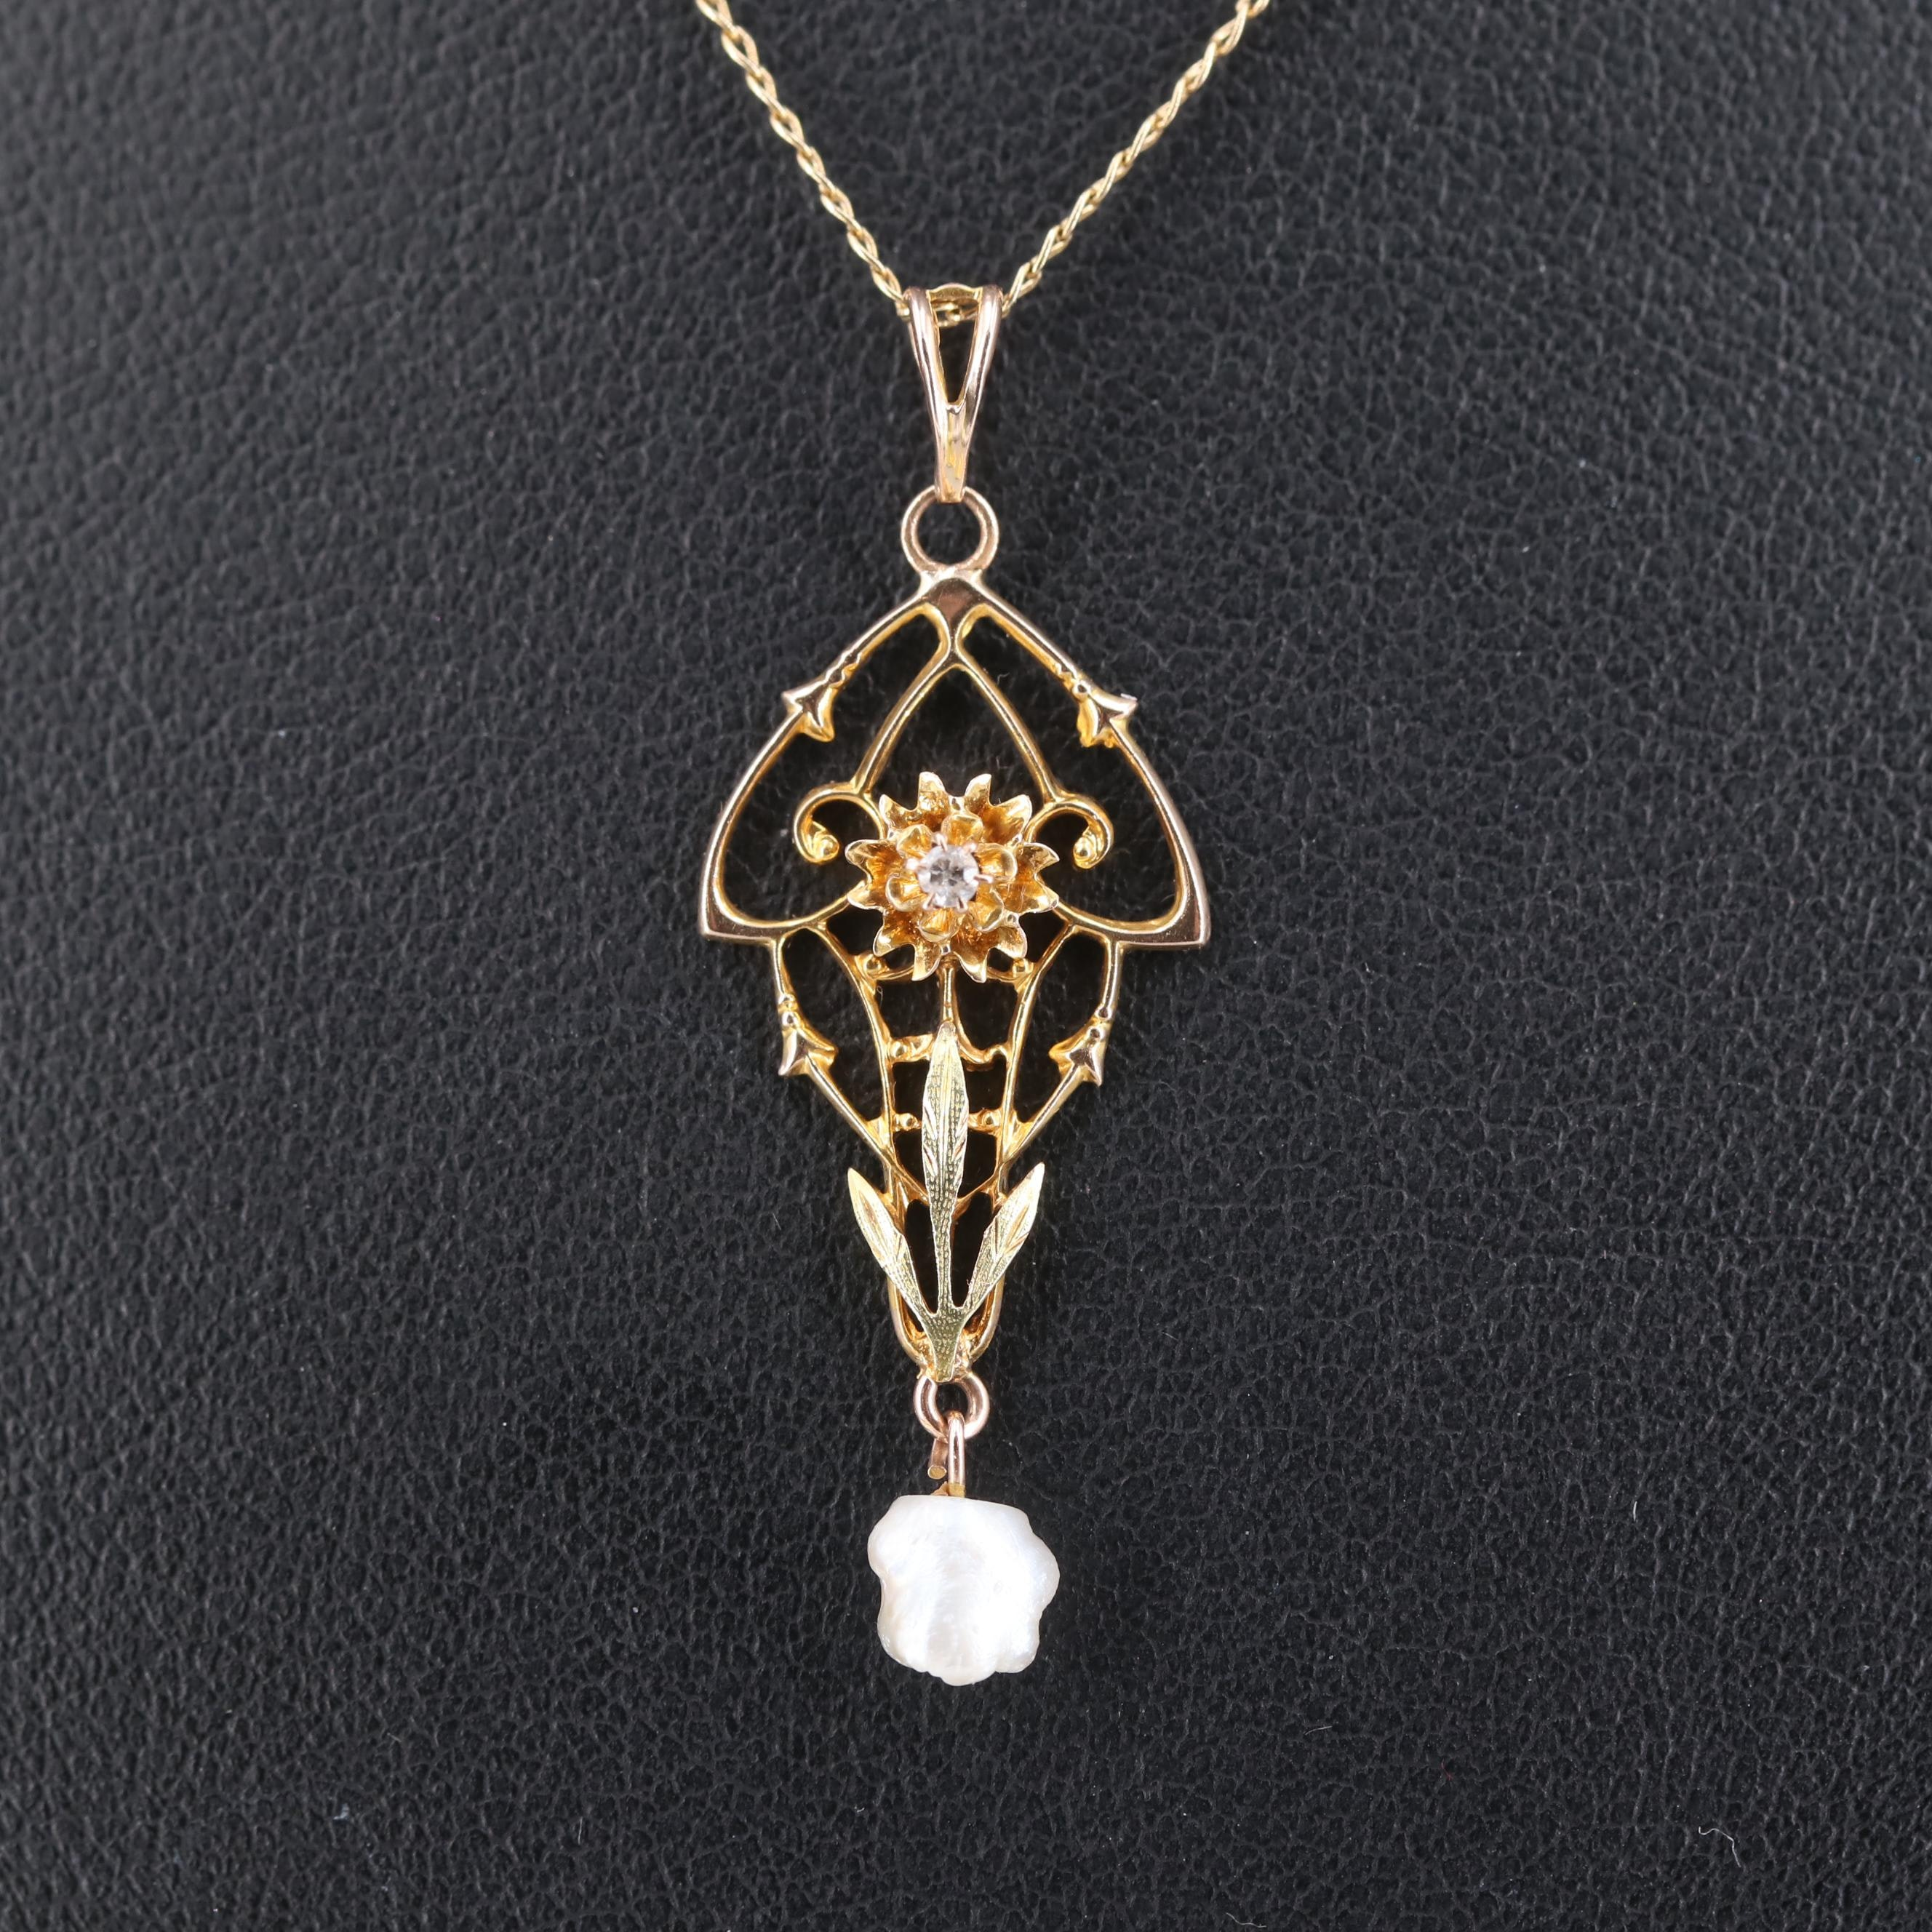 Art Nouveau 10K Yellow Gold Diamond and Pearl Pendant with 14K Gold Necklace